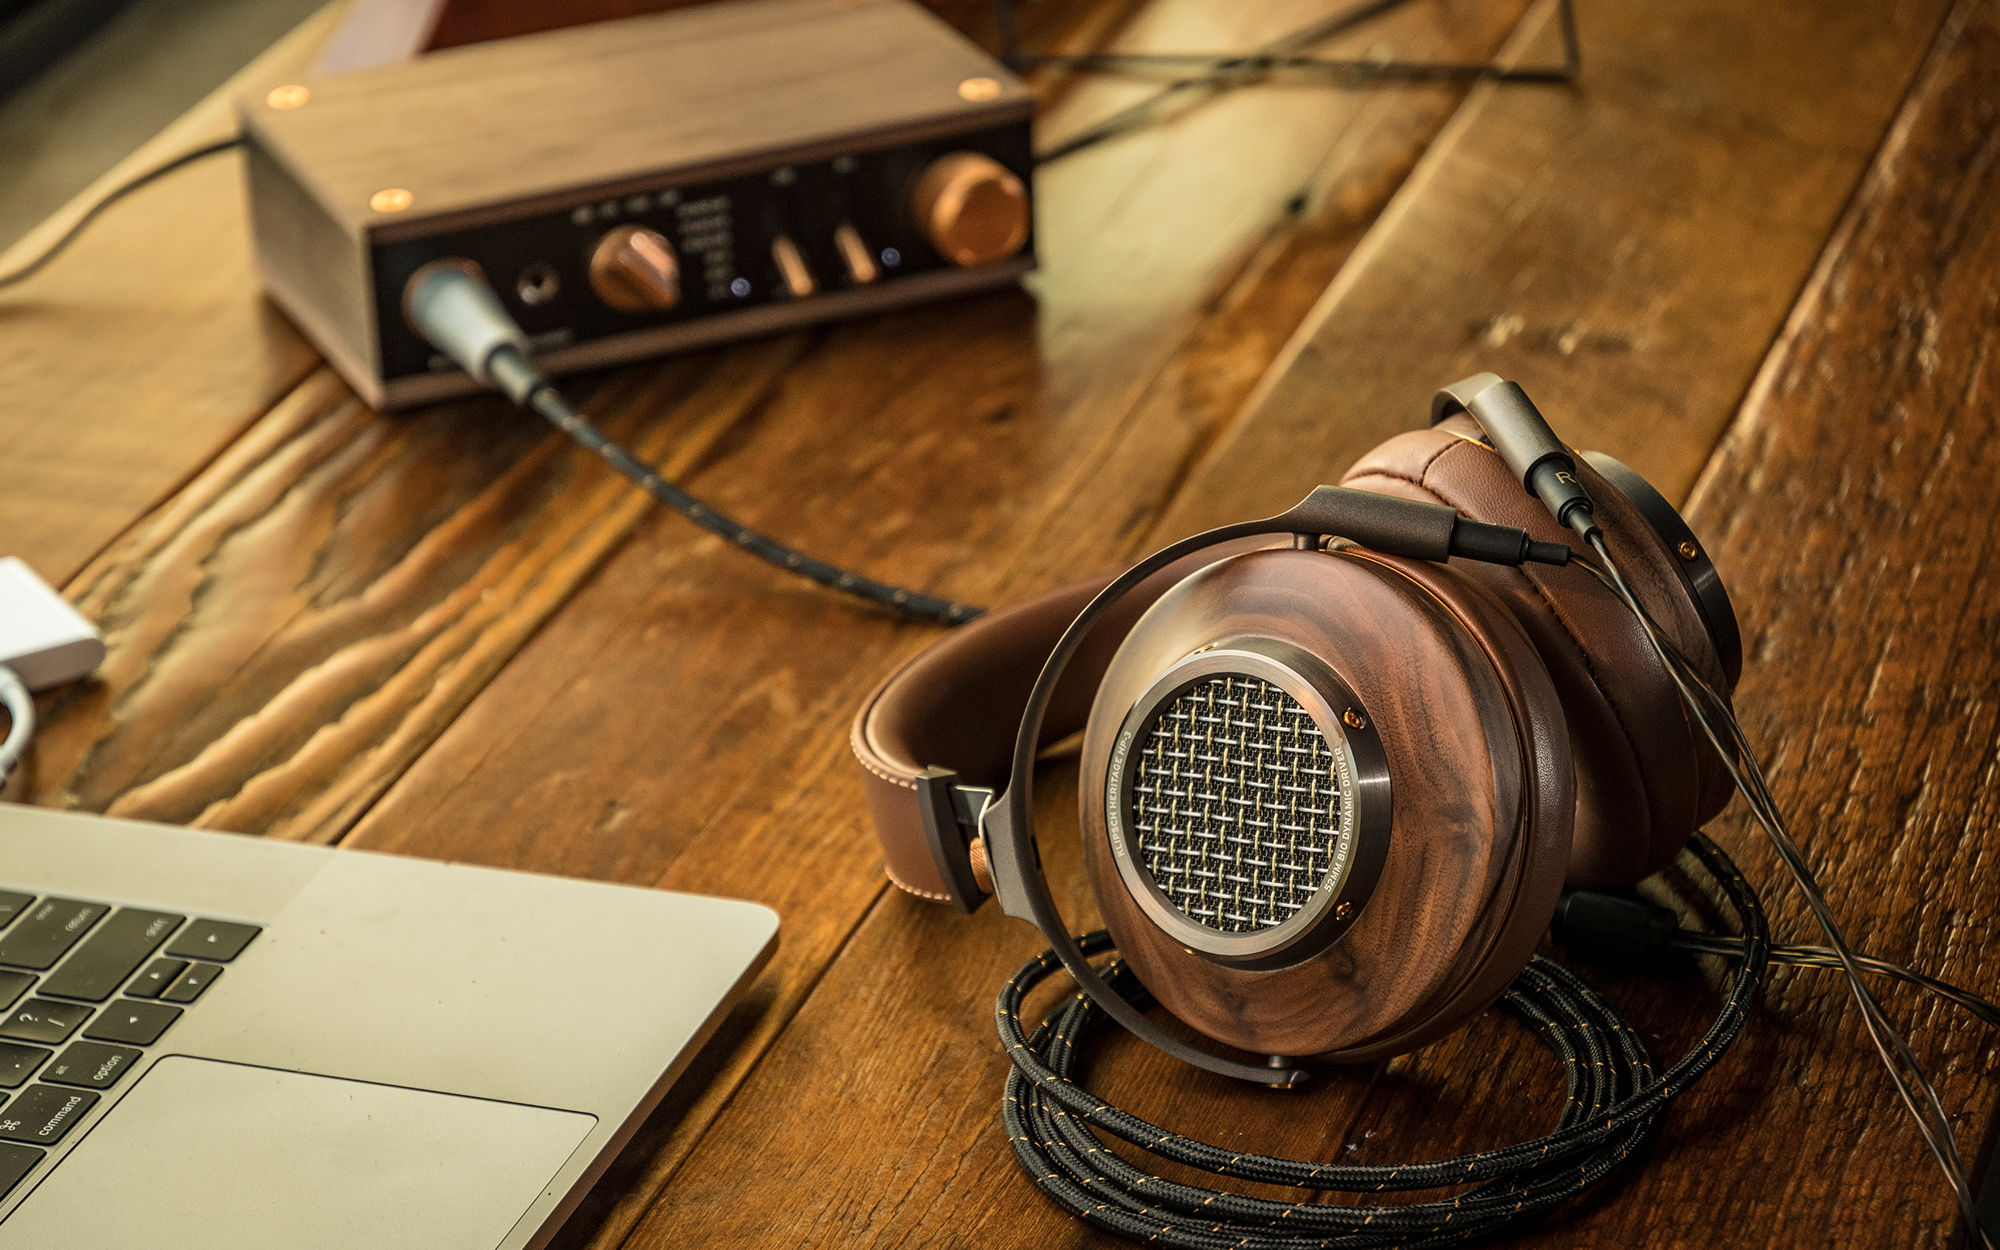 Heritage HP-3 Headphones on a wooden table